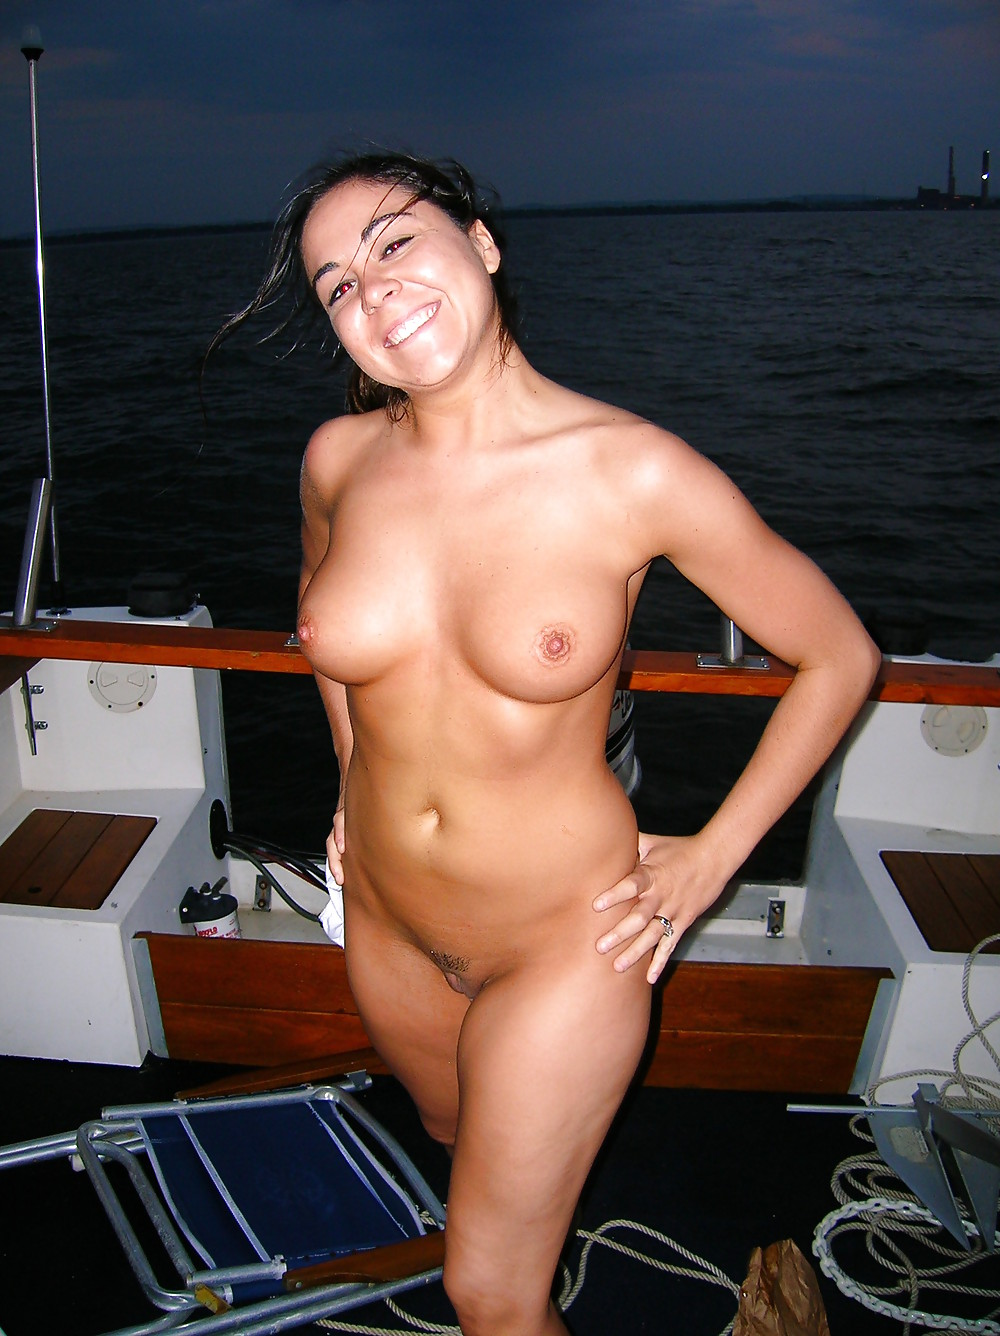 busty brunette posing naked on a boat